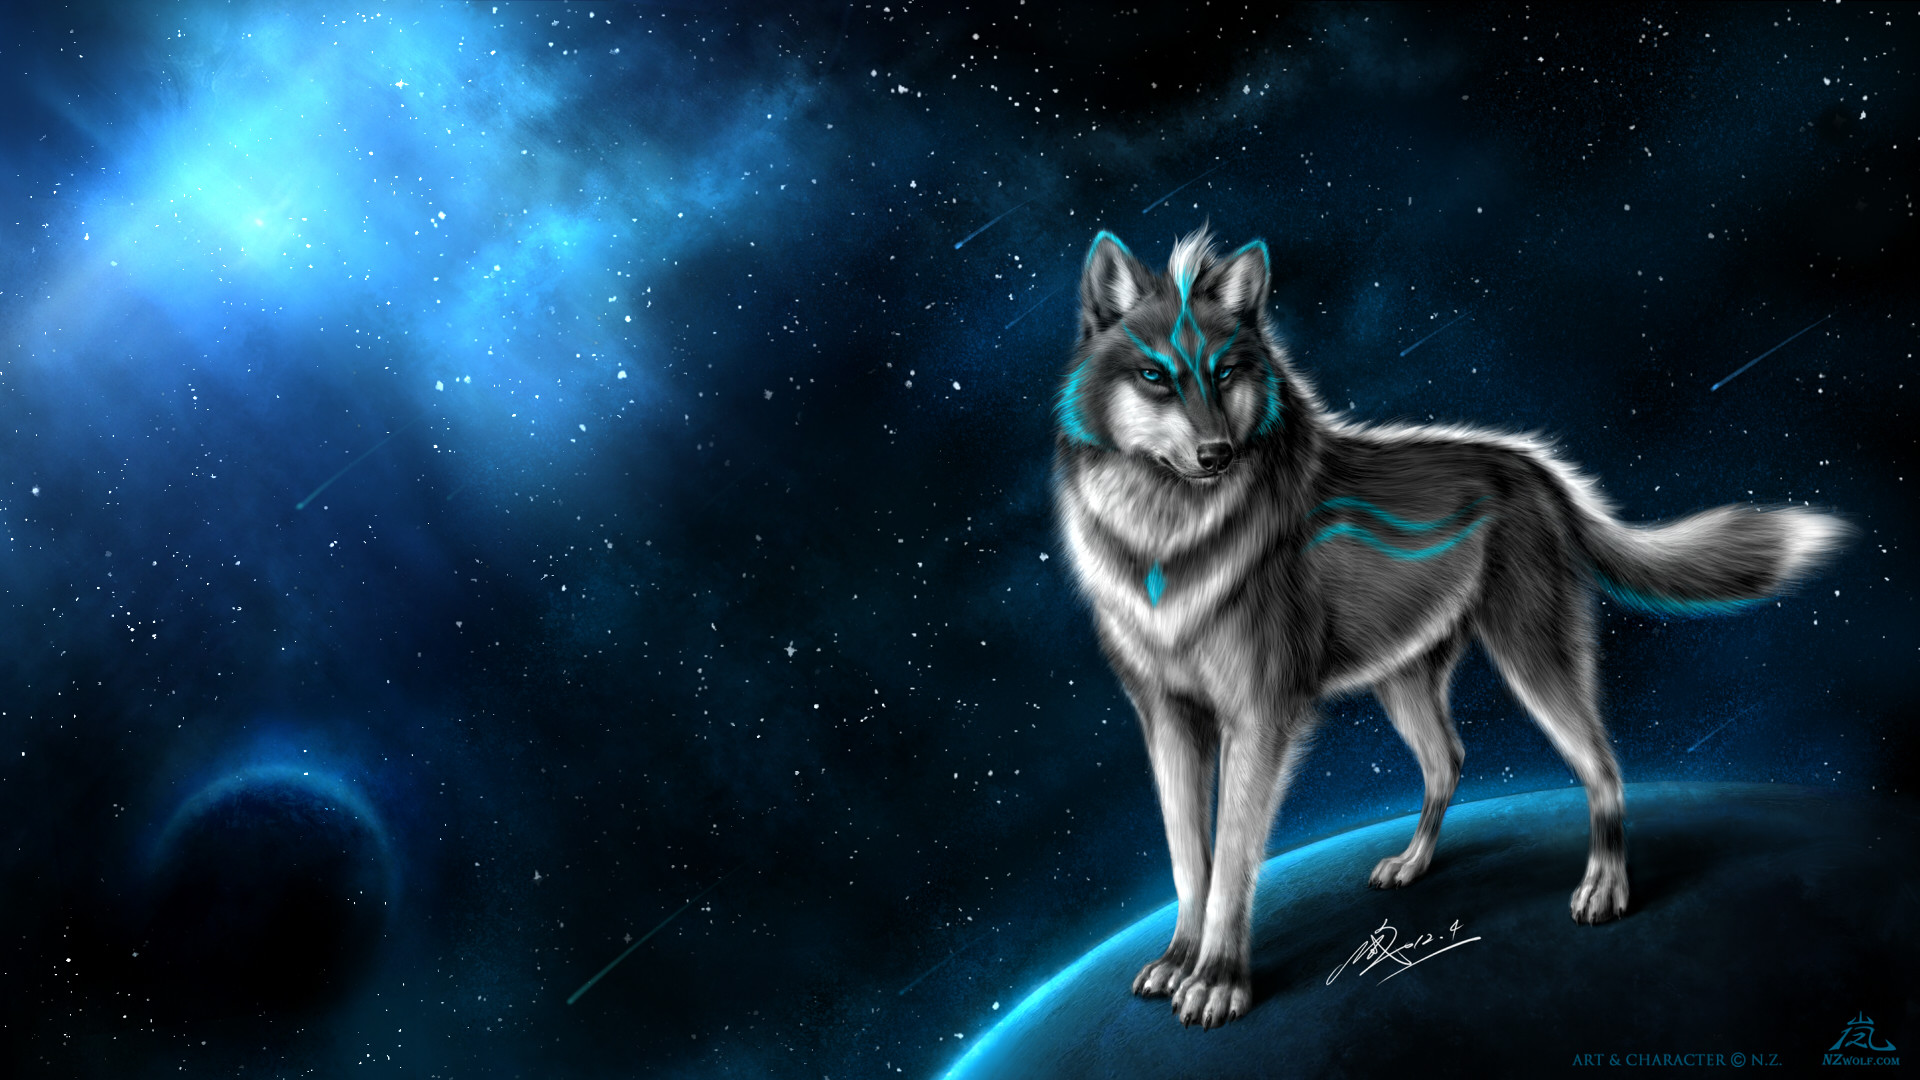 1920x1080 Nicker11500 images Guardian wolf of the blue moon HD wallpaper and  background photos